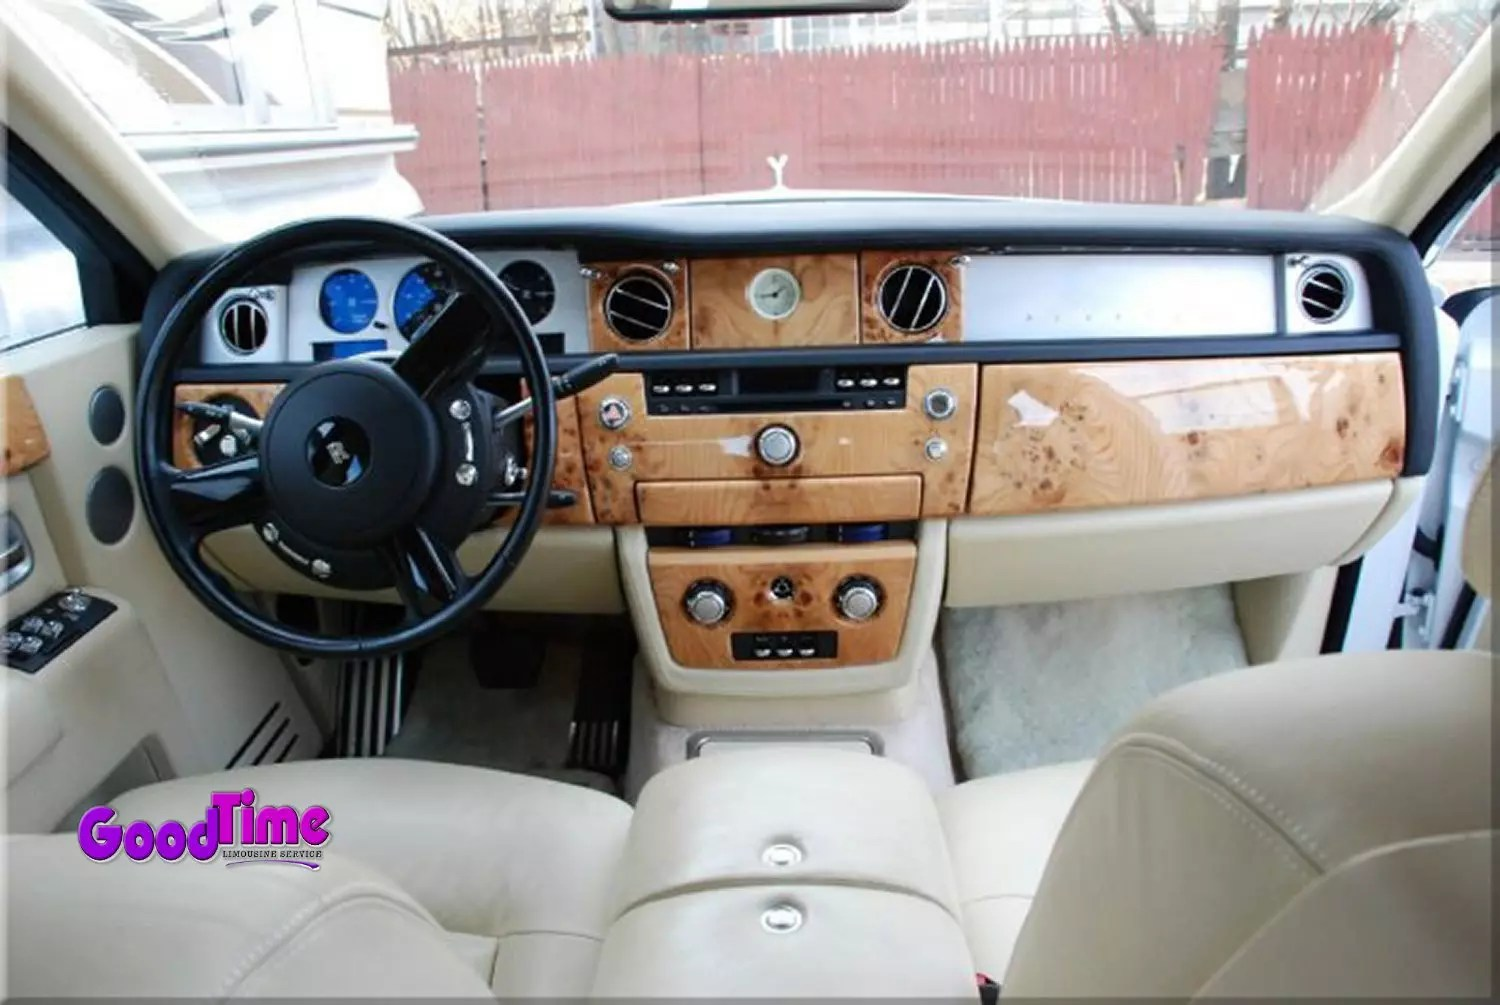 Rolls Royce Phantom White Limo Int 5 2 LIMO RENTAL FLEET